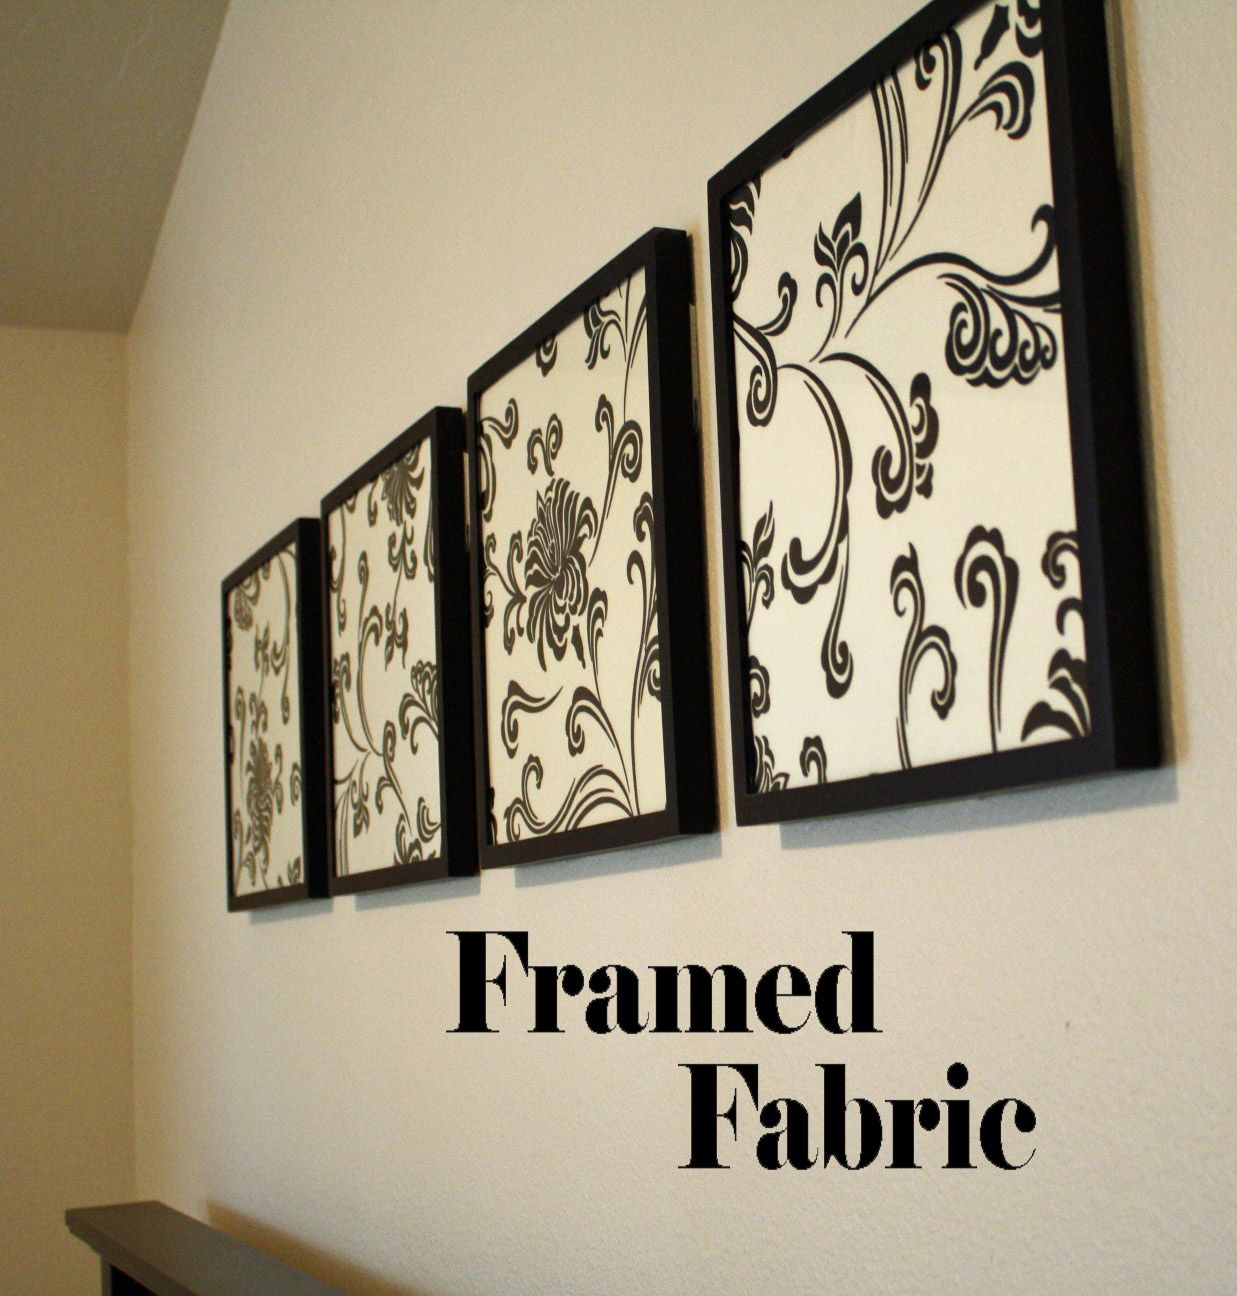 Framed fabric wall decor u find a cute fabric that matches your